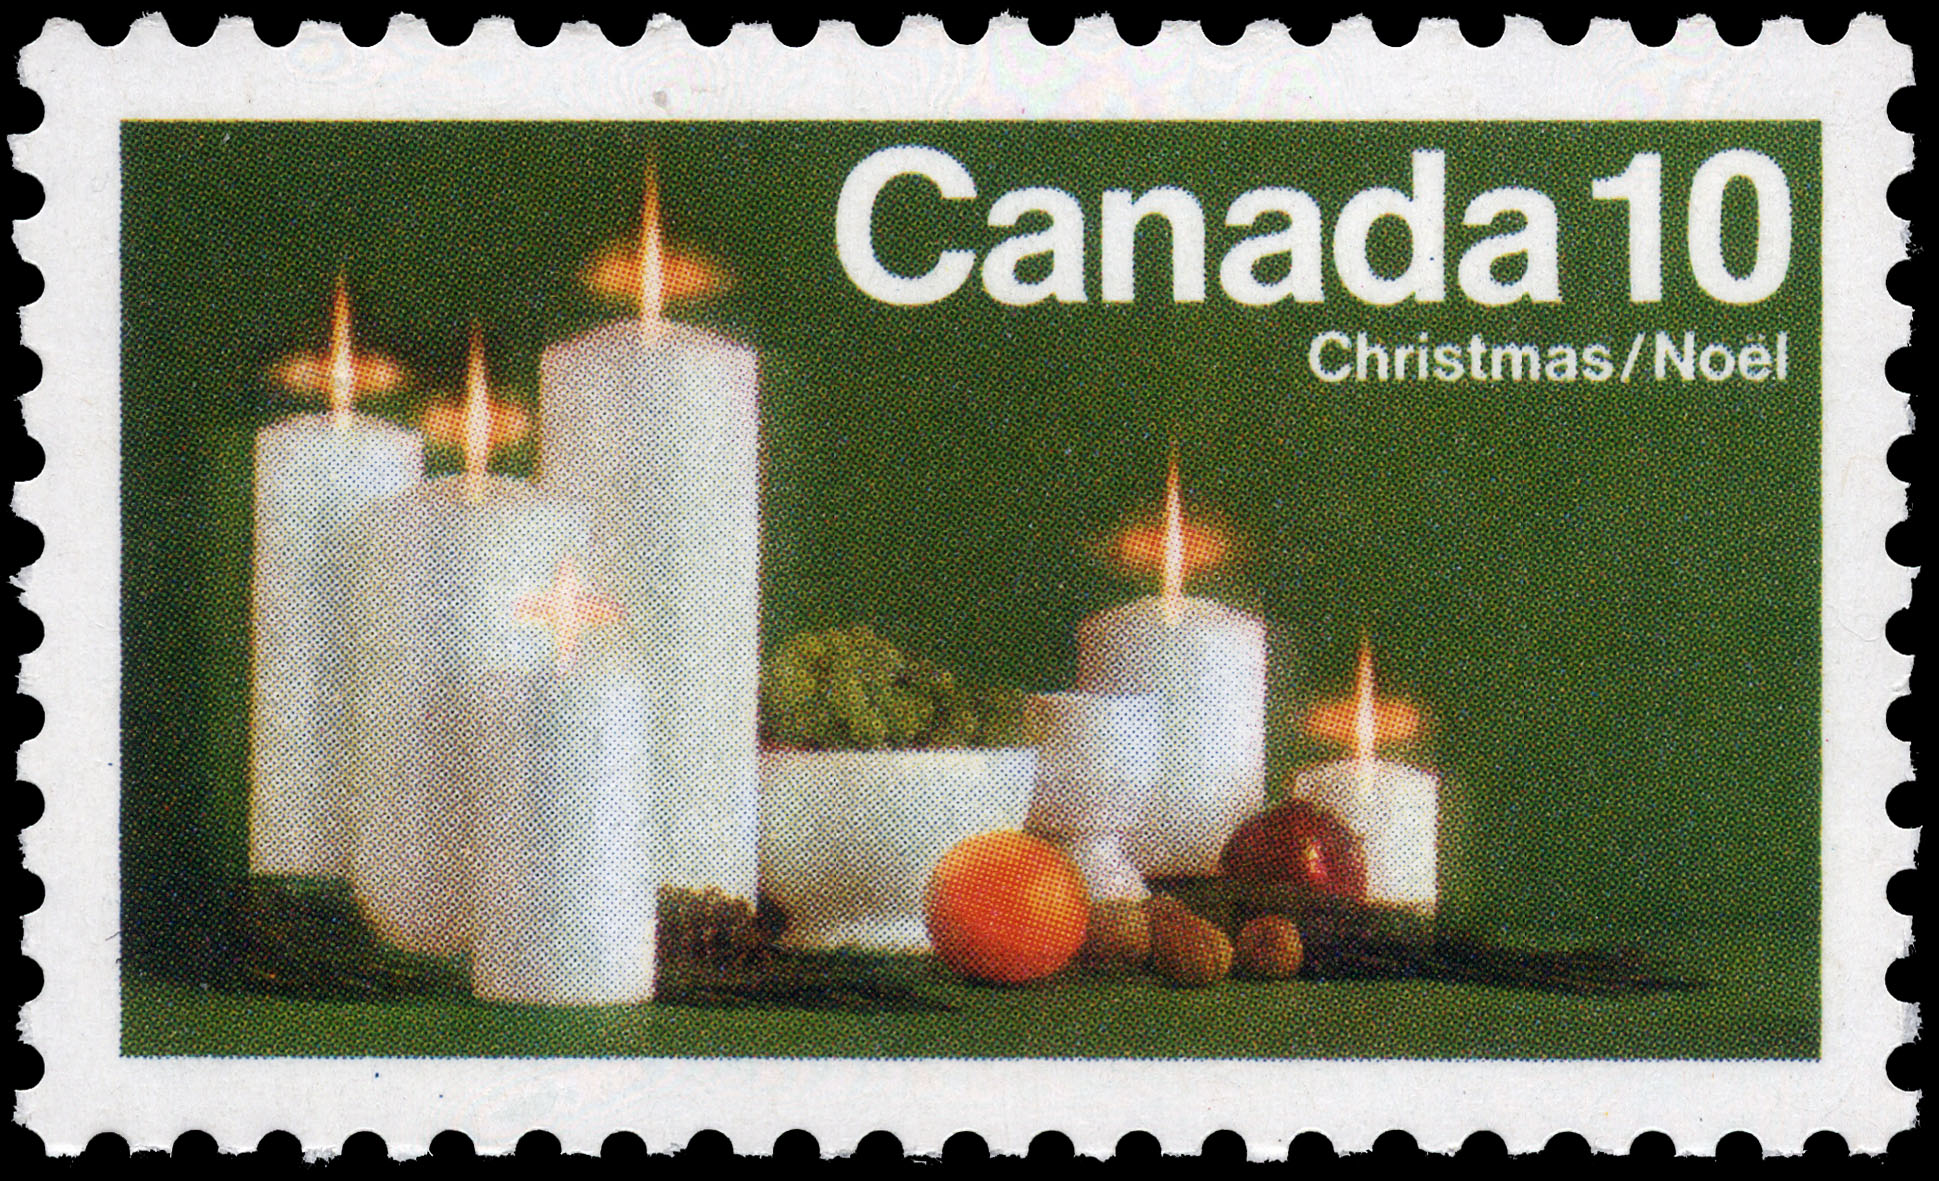 Candles Canada Postage Stamp